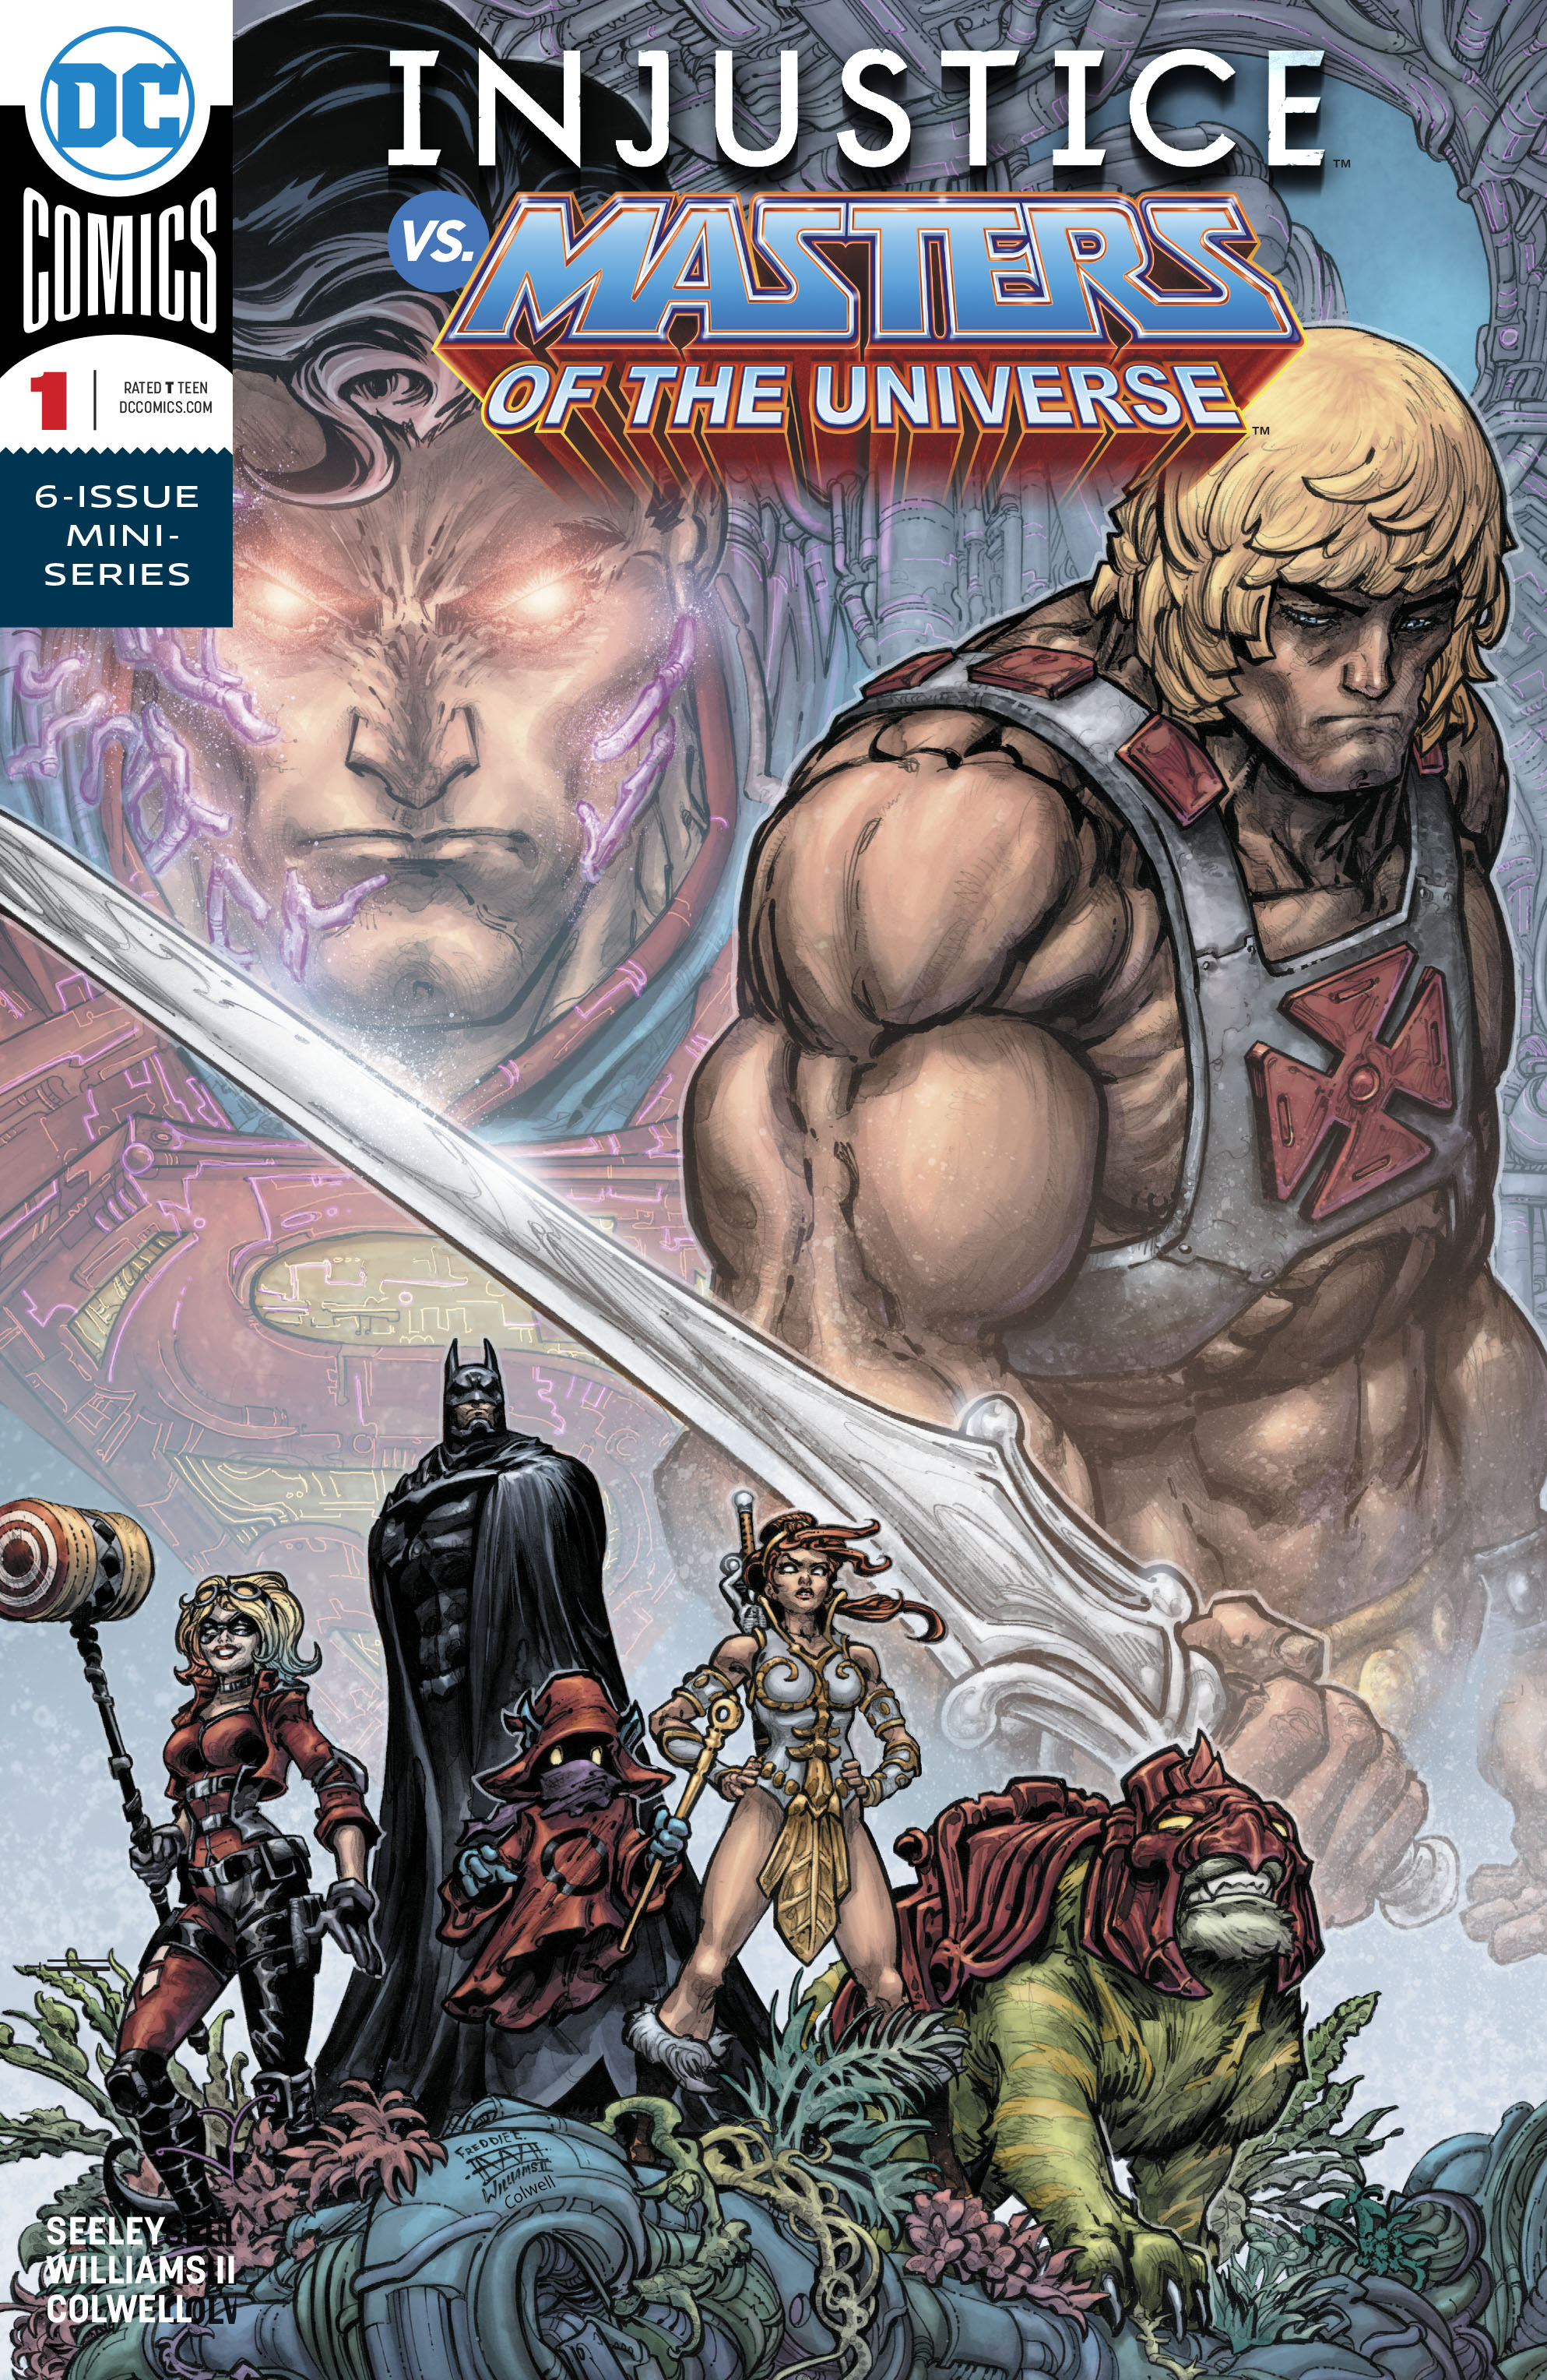 INJUSTICE VS THE MASTERS OF THE UNIVERSE #1 (OF 6)